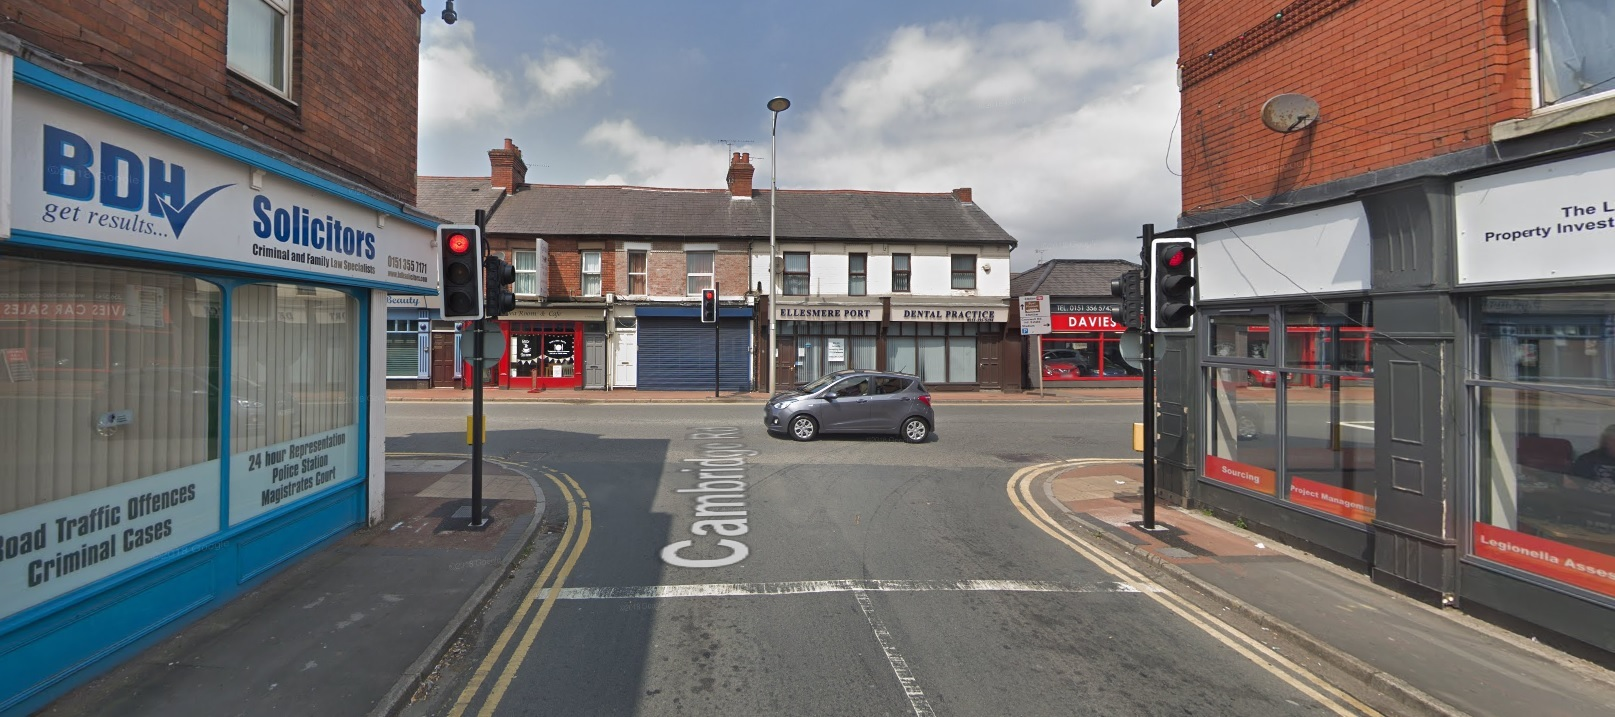 Ellesmere Port biker ran red light and collided with oncoming car after he 'panicked' when police approached